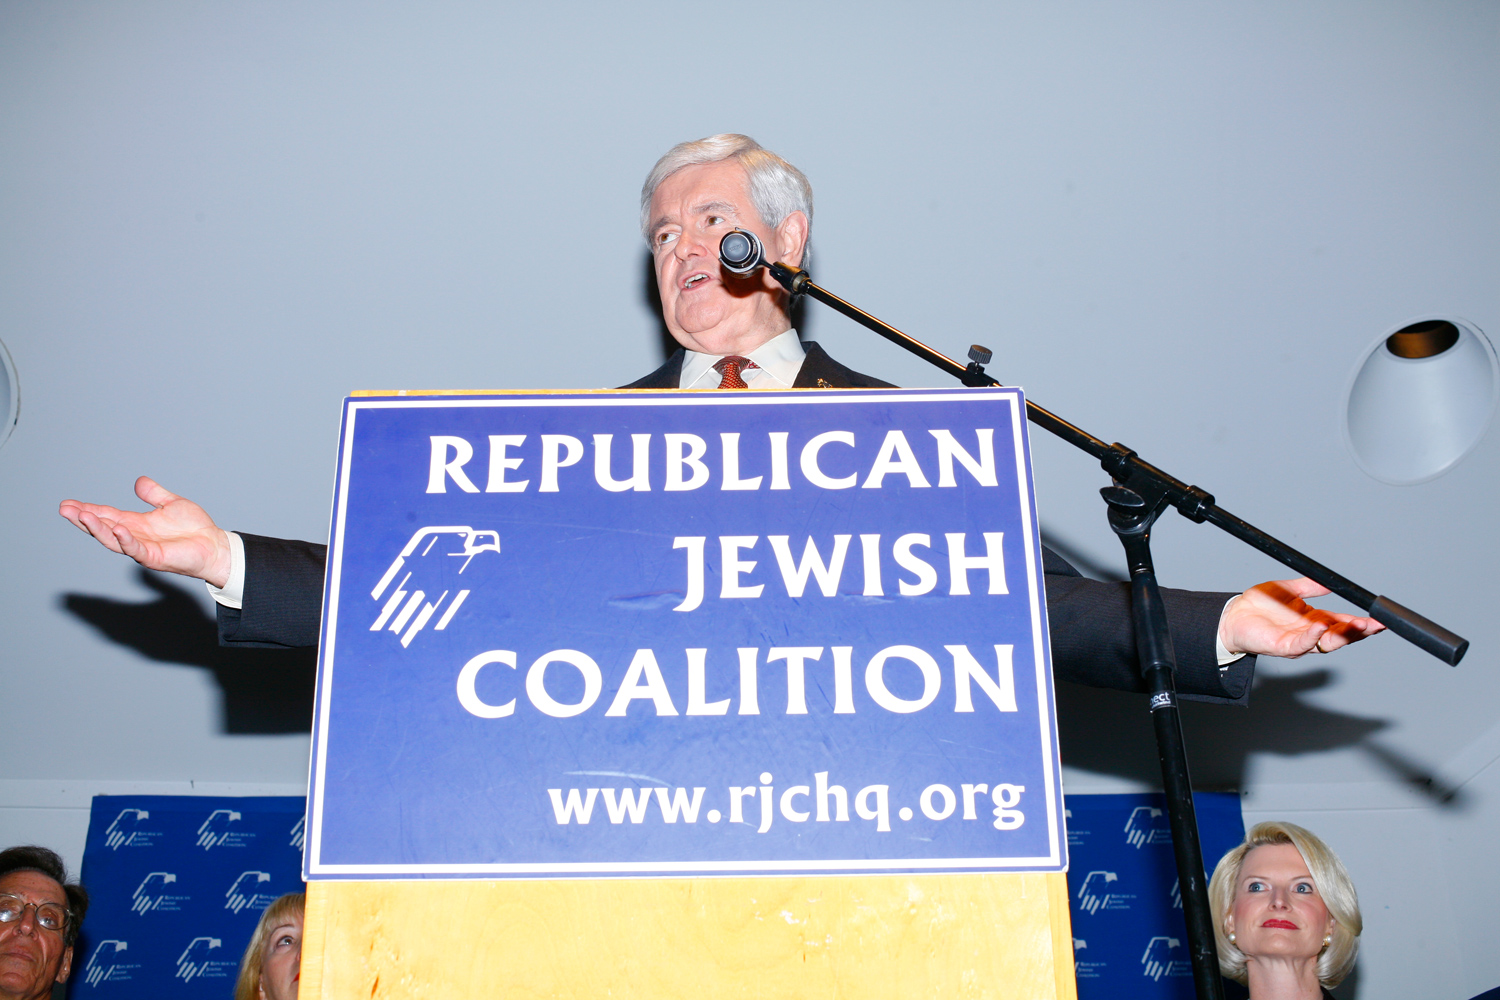 Newt Gingrich addresses the Republican Jewish Coalition in Delray Beach, Fla., January 27, 2012.